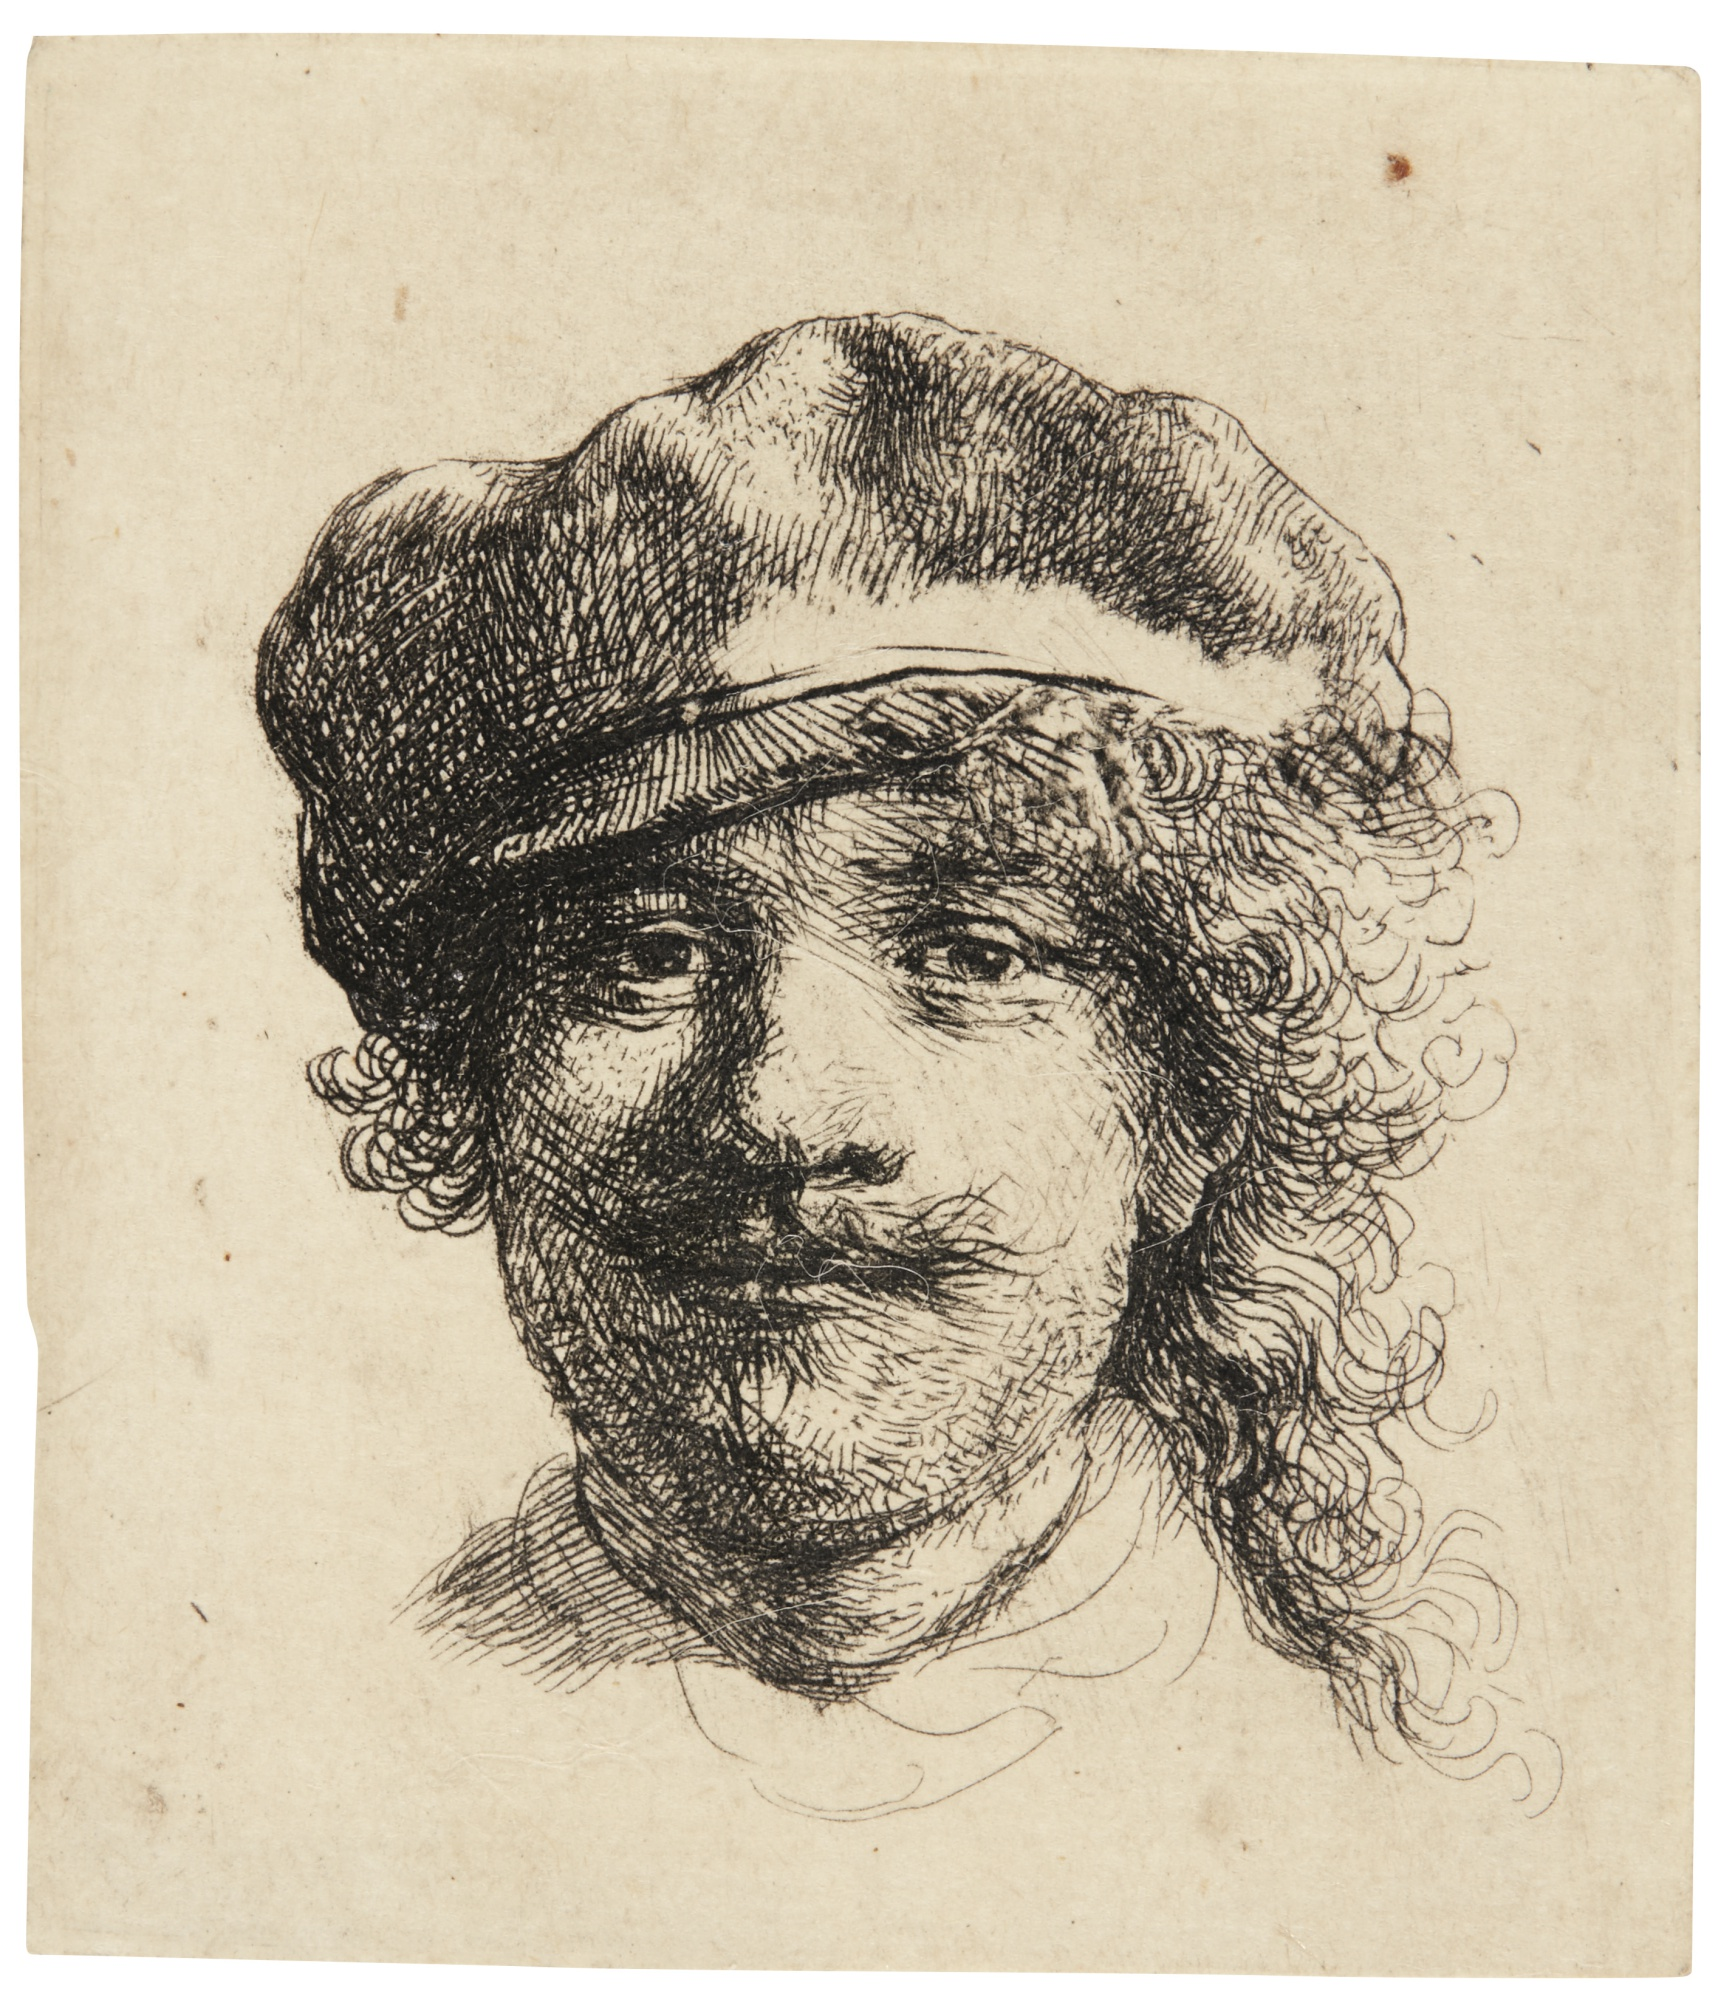 Rembrandt van Rijn-Self-Portrait Wearing A Cap: Full Face, Head Only (Bartsch, Hollstein 2; New Hollstein 133; Hind 57)-1634